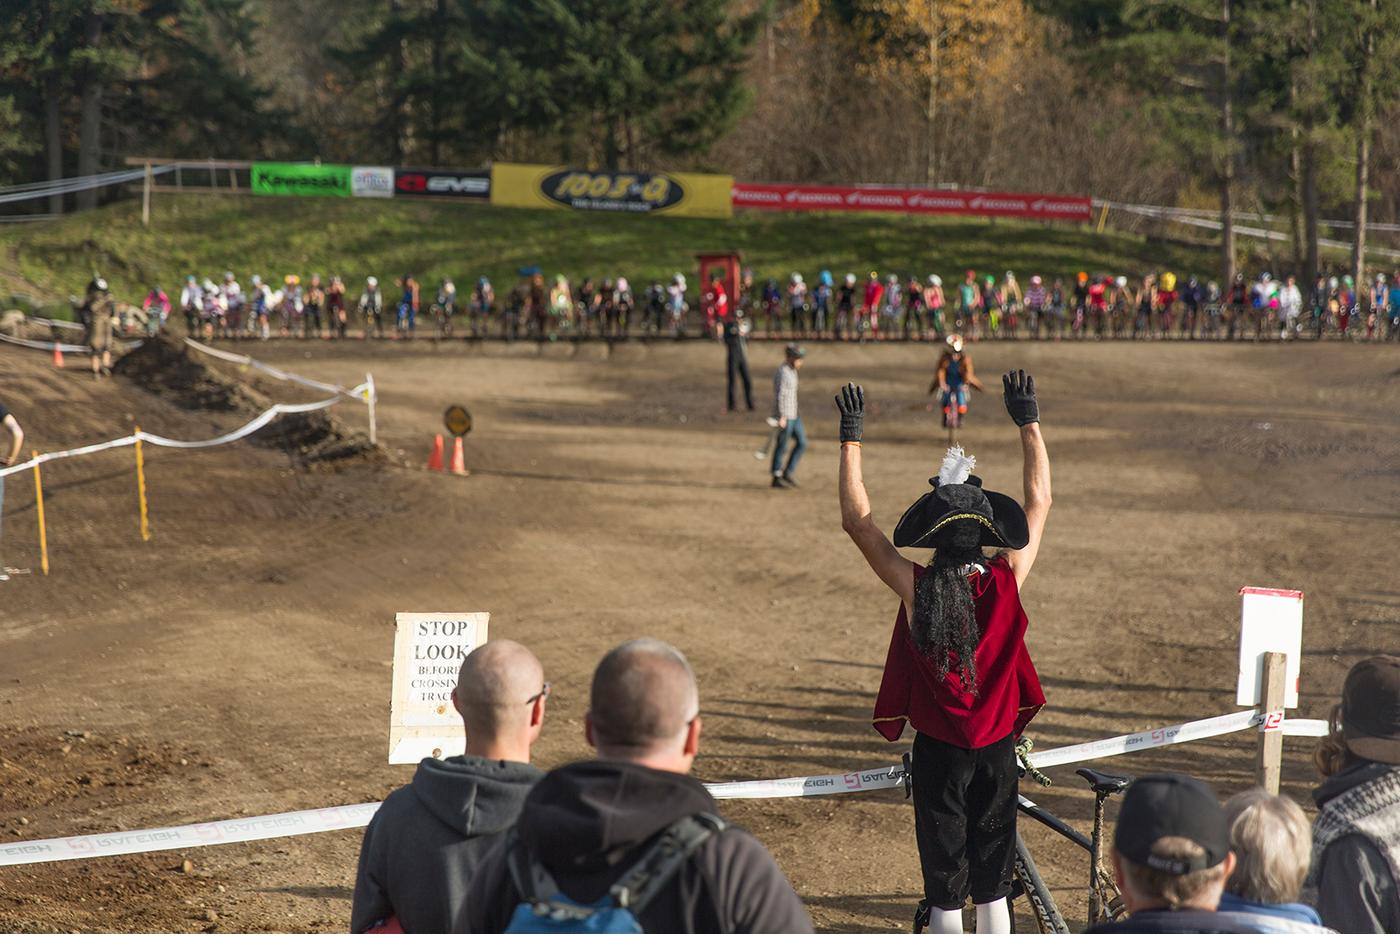 Fireball and Pixie Dust at SSCXWC15VIC